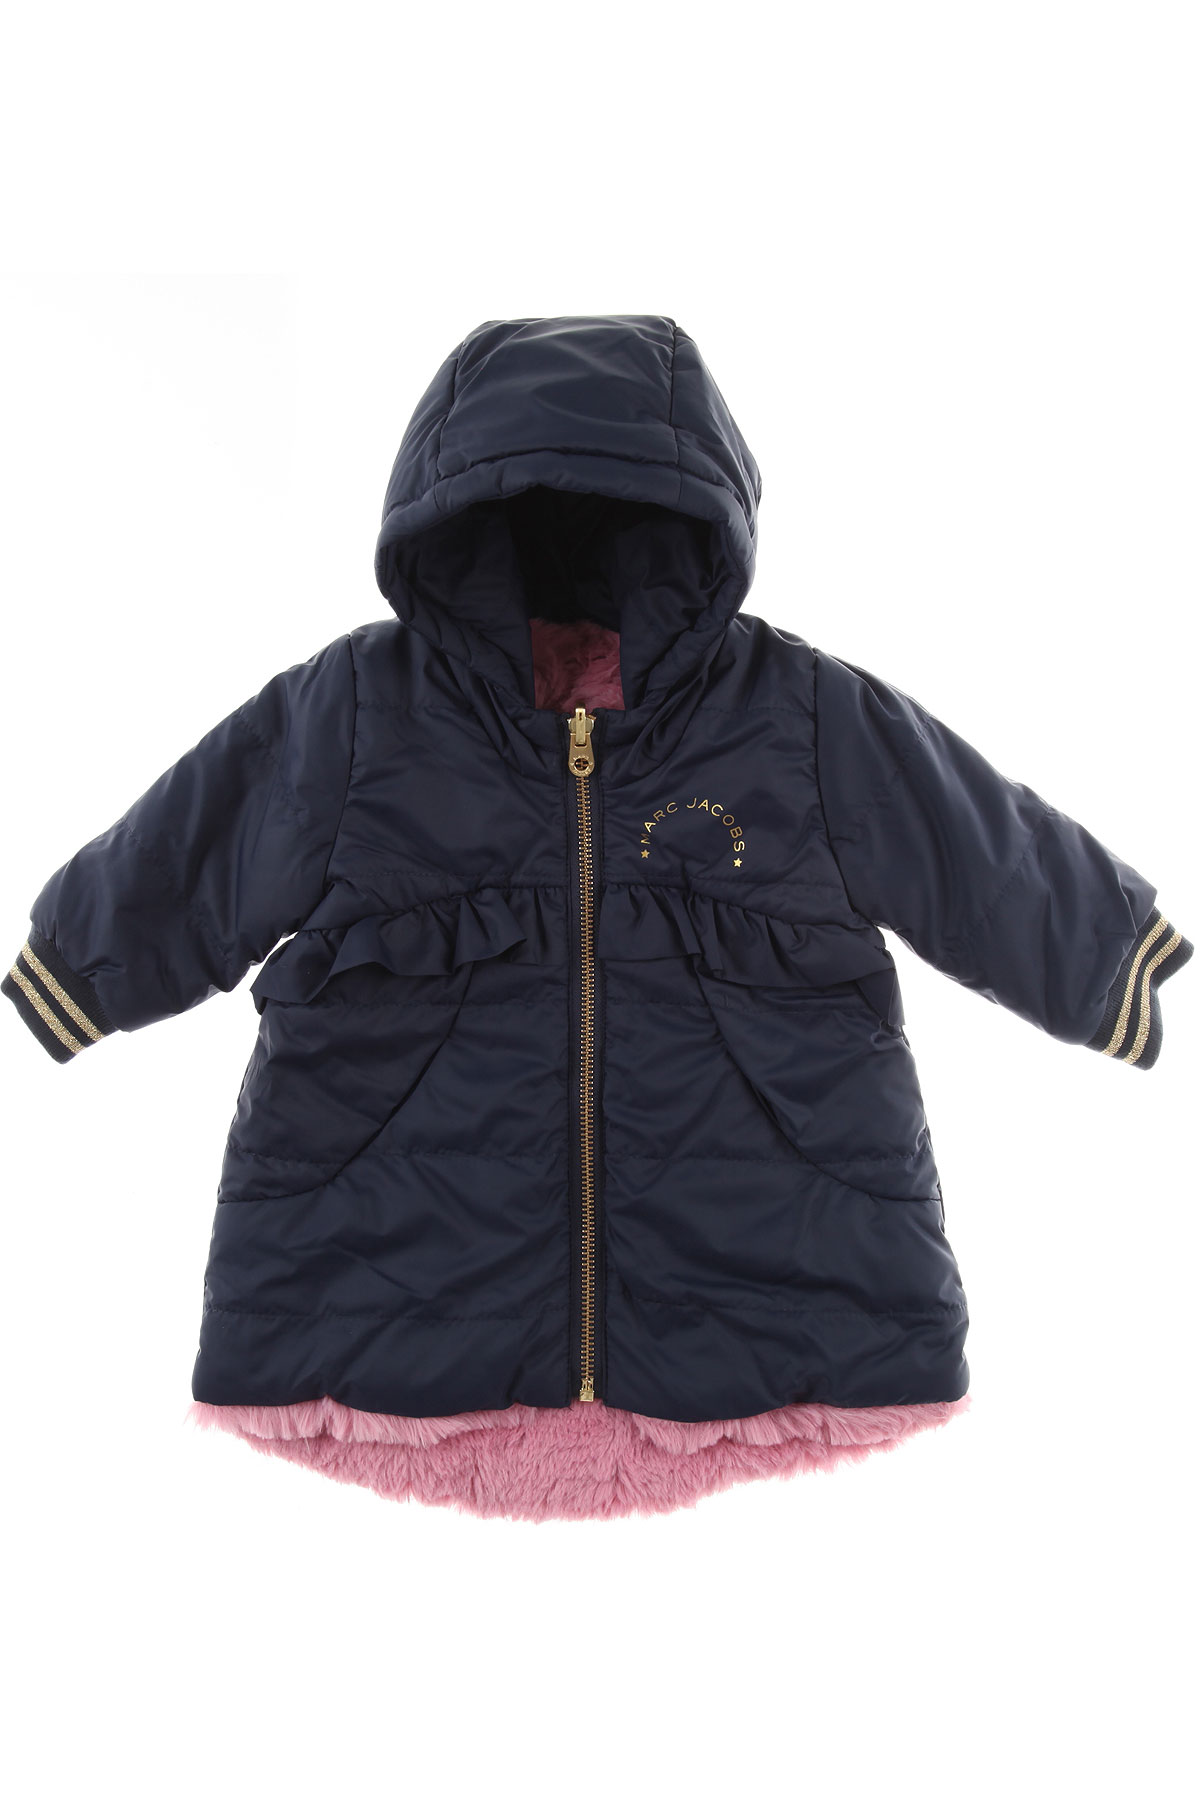 Image of Marc Jacobs Baby Jacket for Girls, Blue, polyester, 2017, 12M 18M 3Y 6M